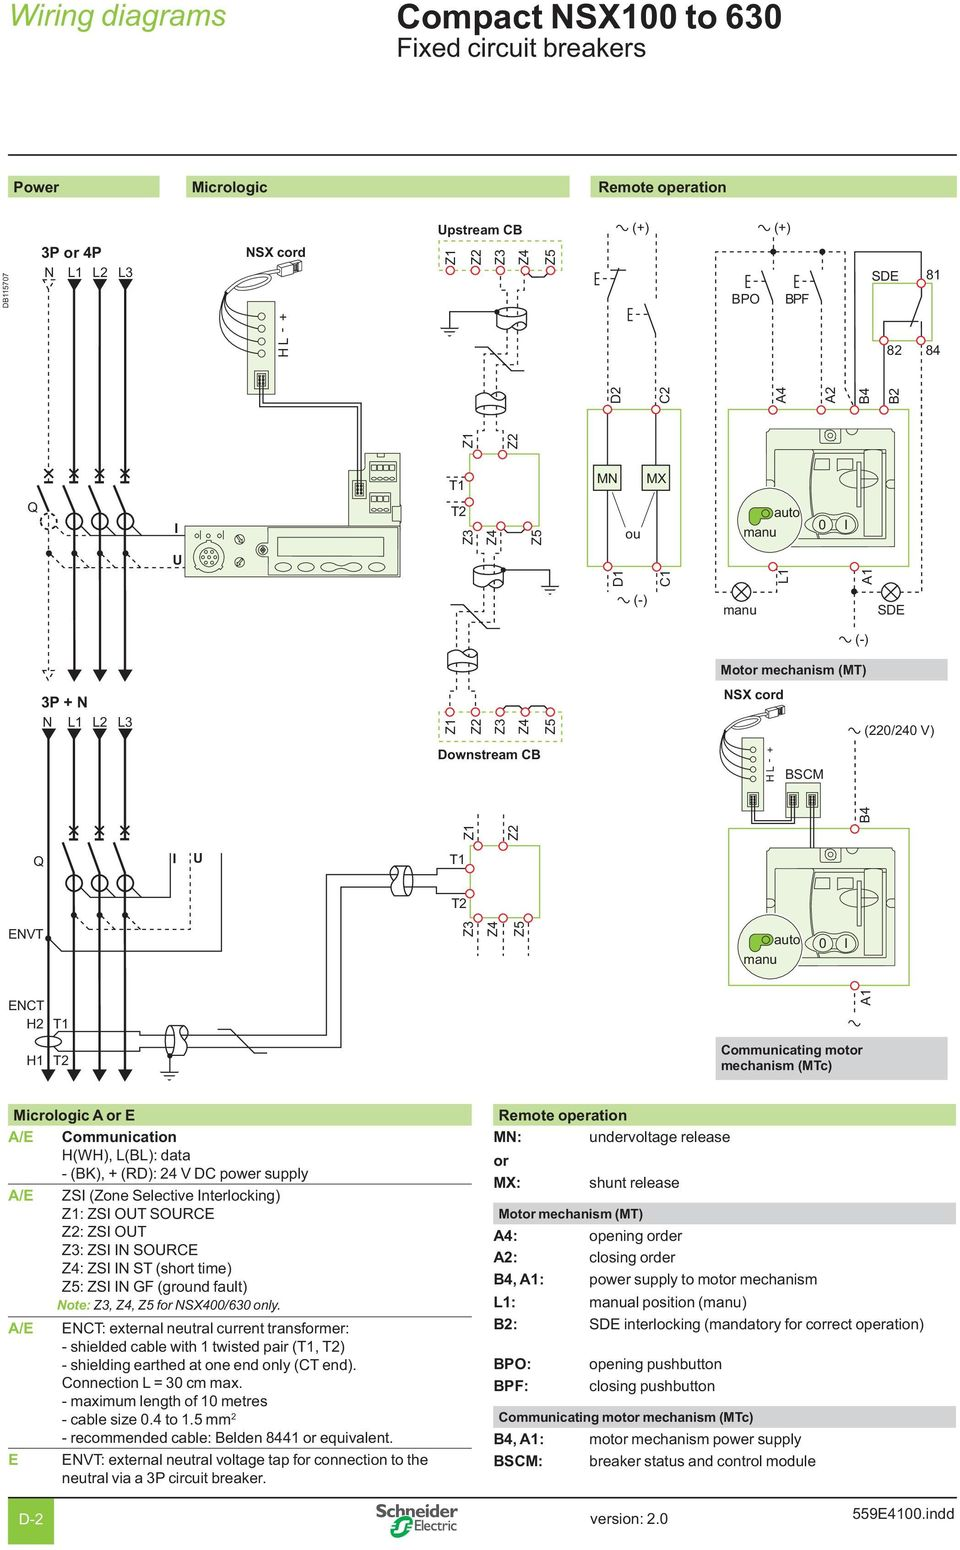 Wiring Diagrams Compact Nsx Contents Pdf 220 Schematic Wire Diagram A E Zs Zone Selective Nterlocking Out Source